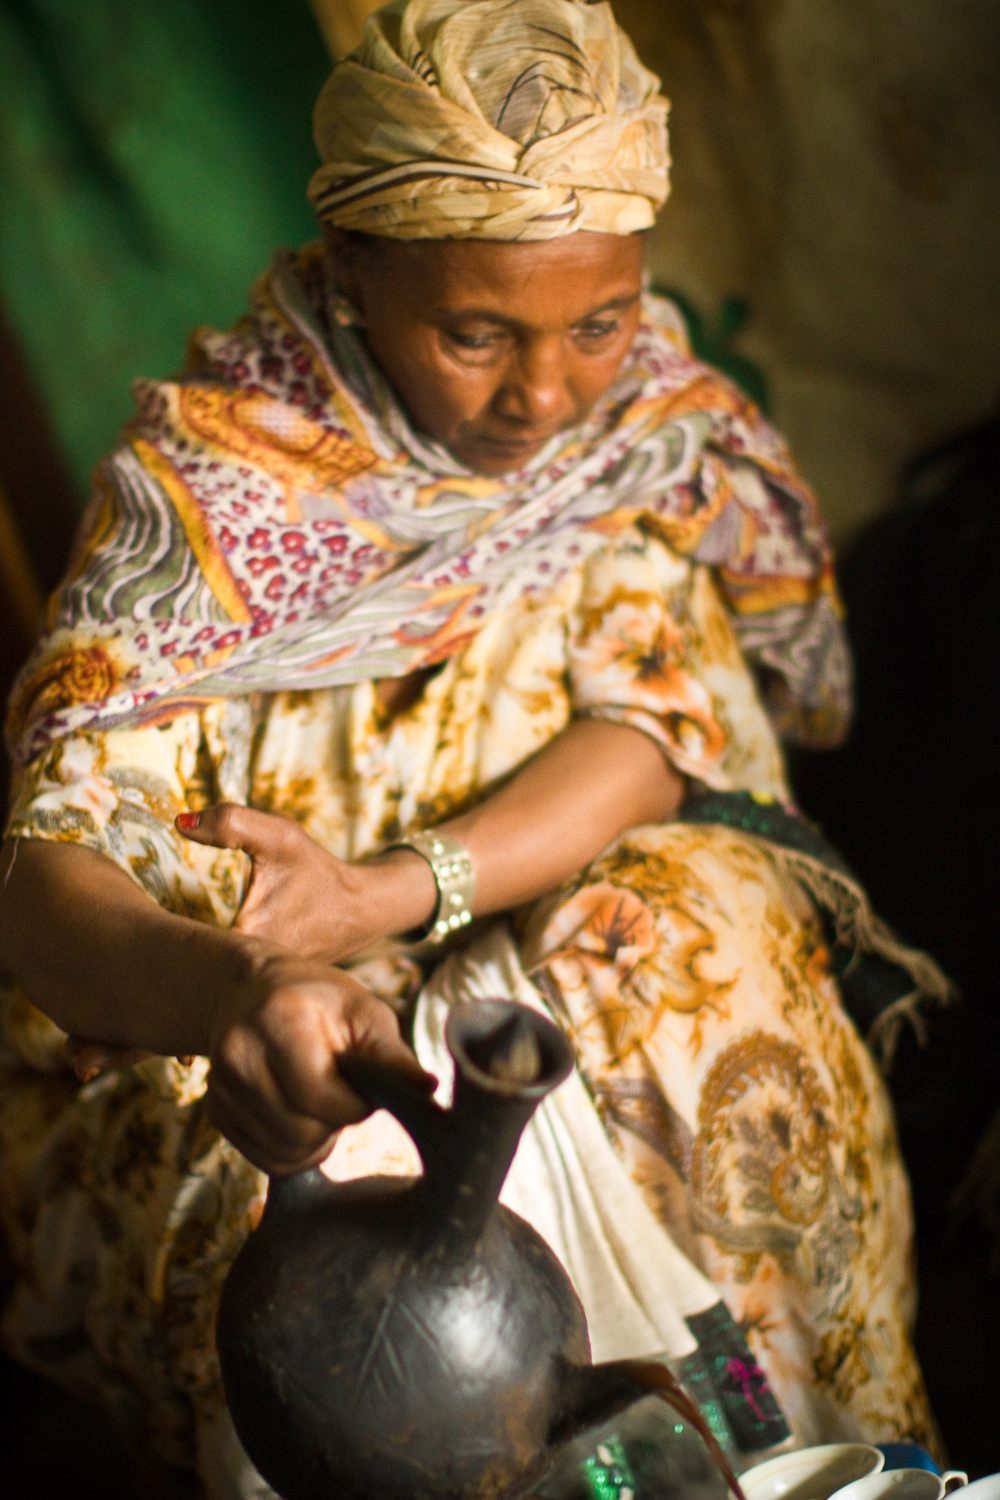 A mother makes traditional Ethiopian coffee for our team of guests who employed her son for the day as a tour guide.